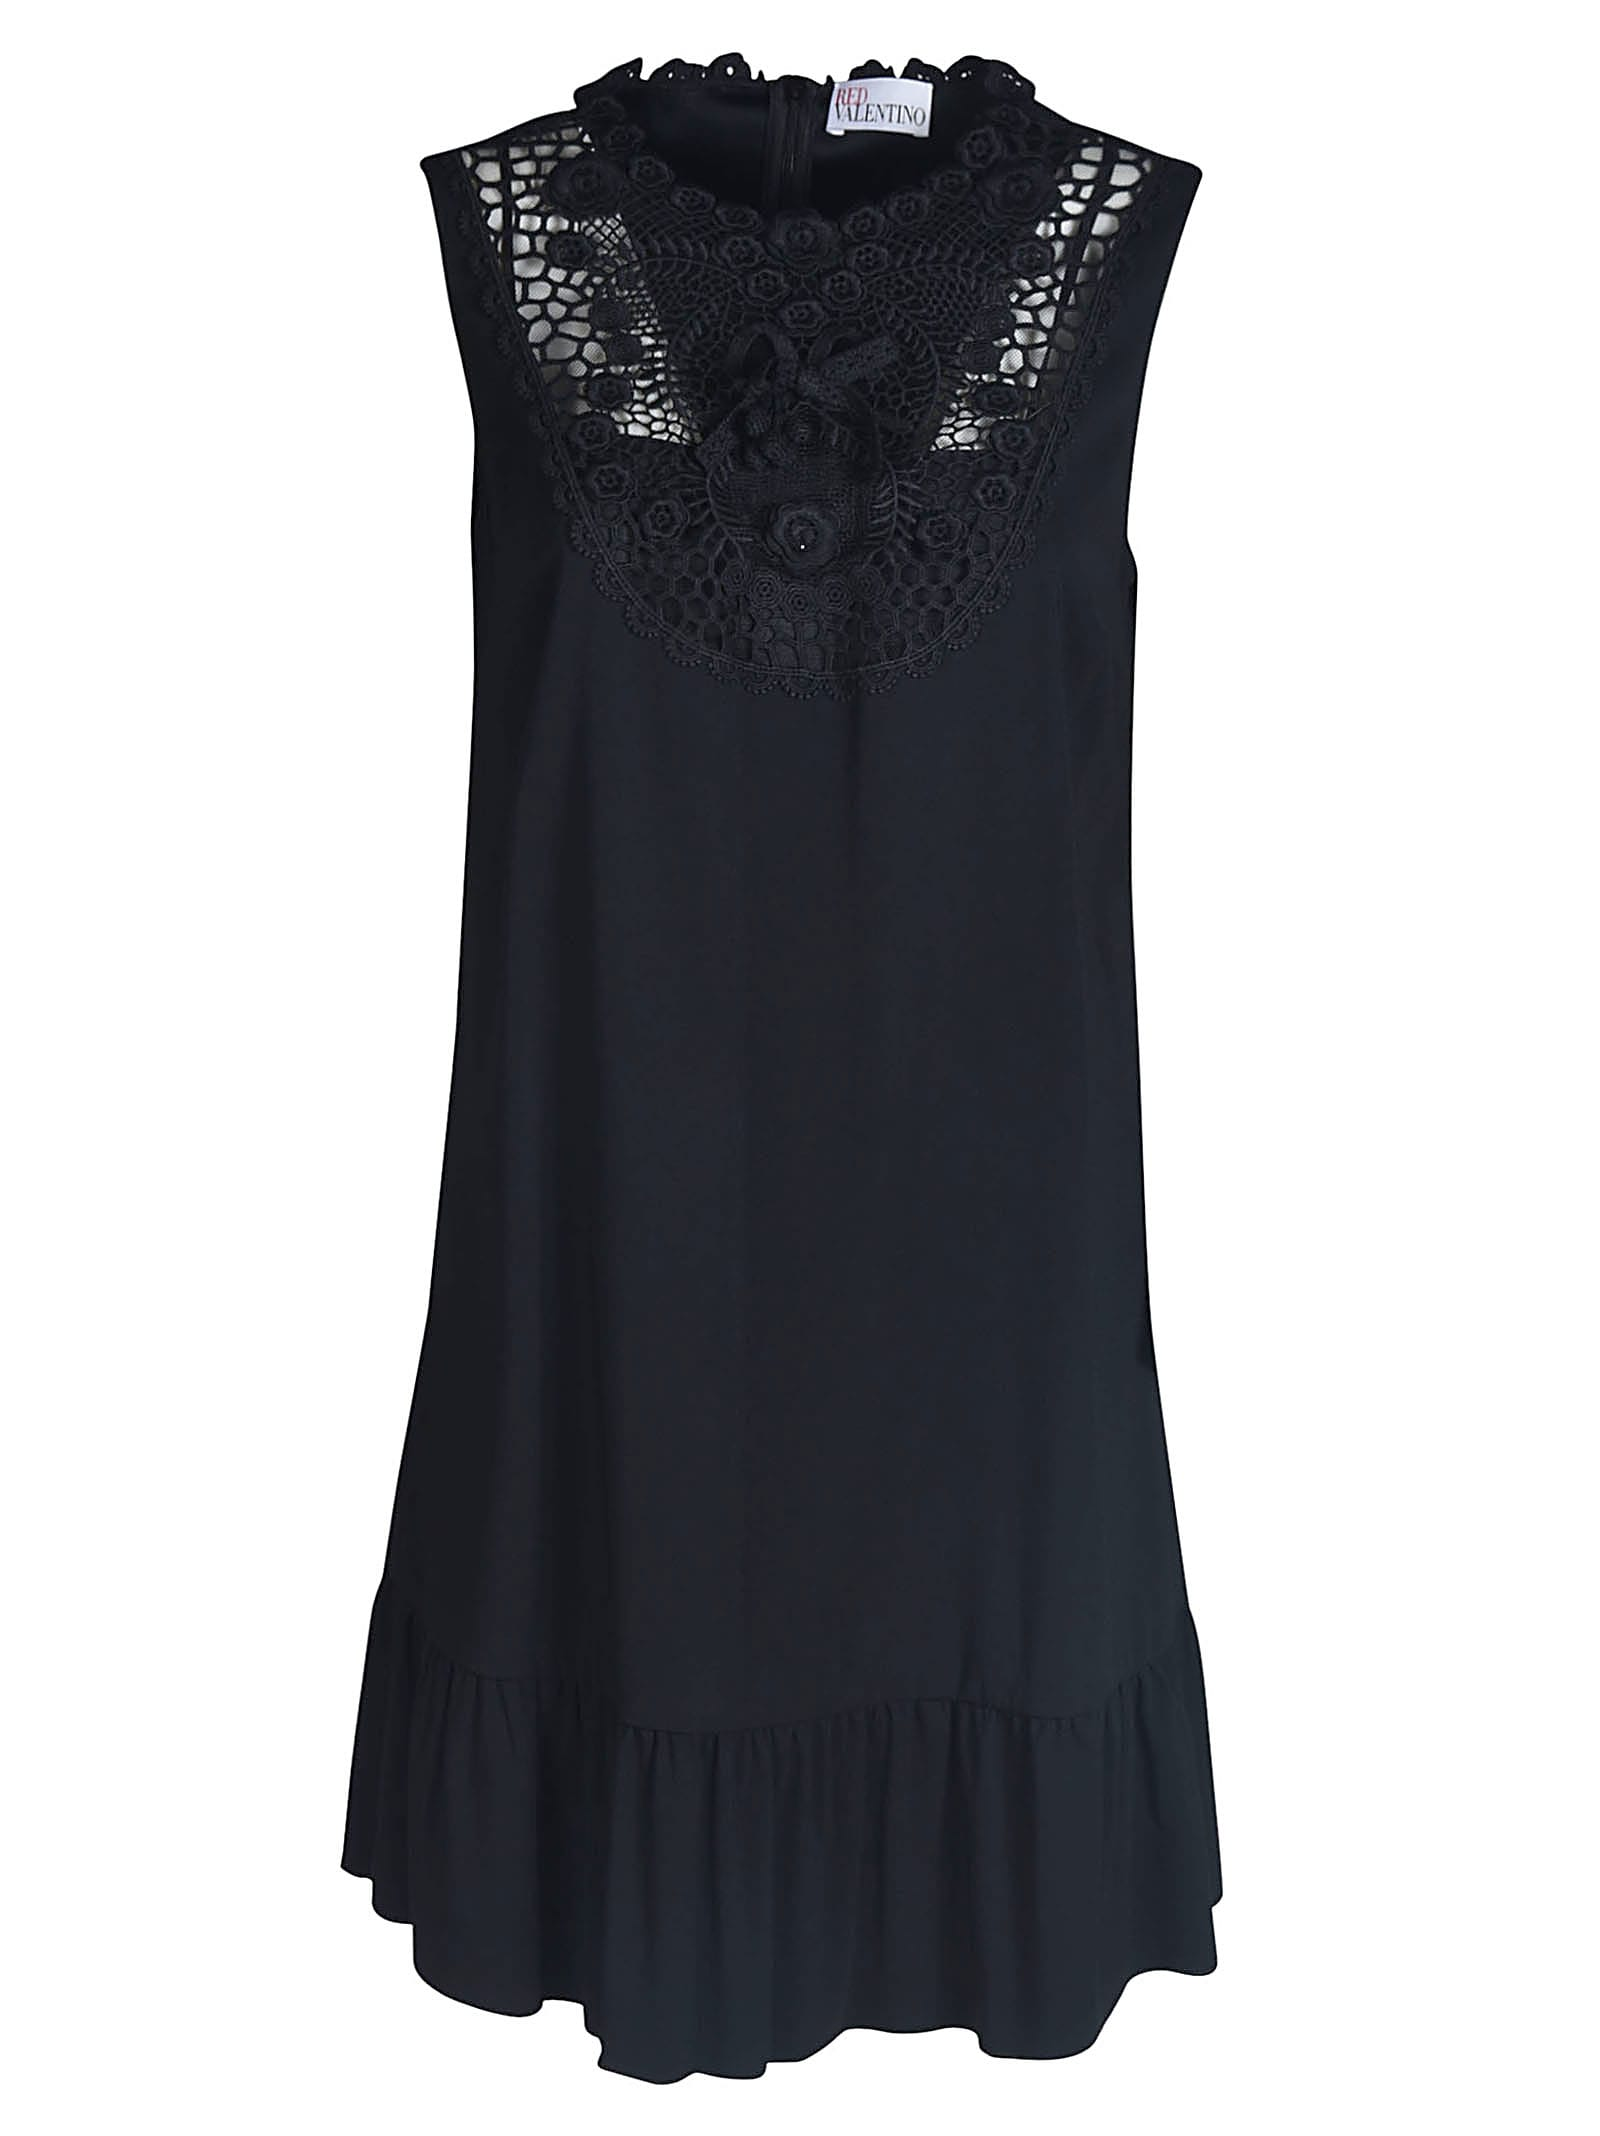 RED Valentino Short Length Floral Lace Dress